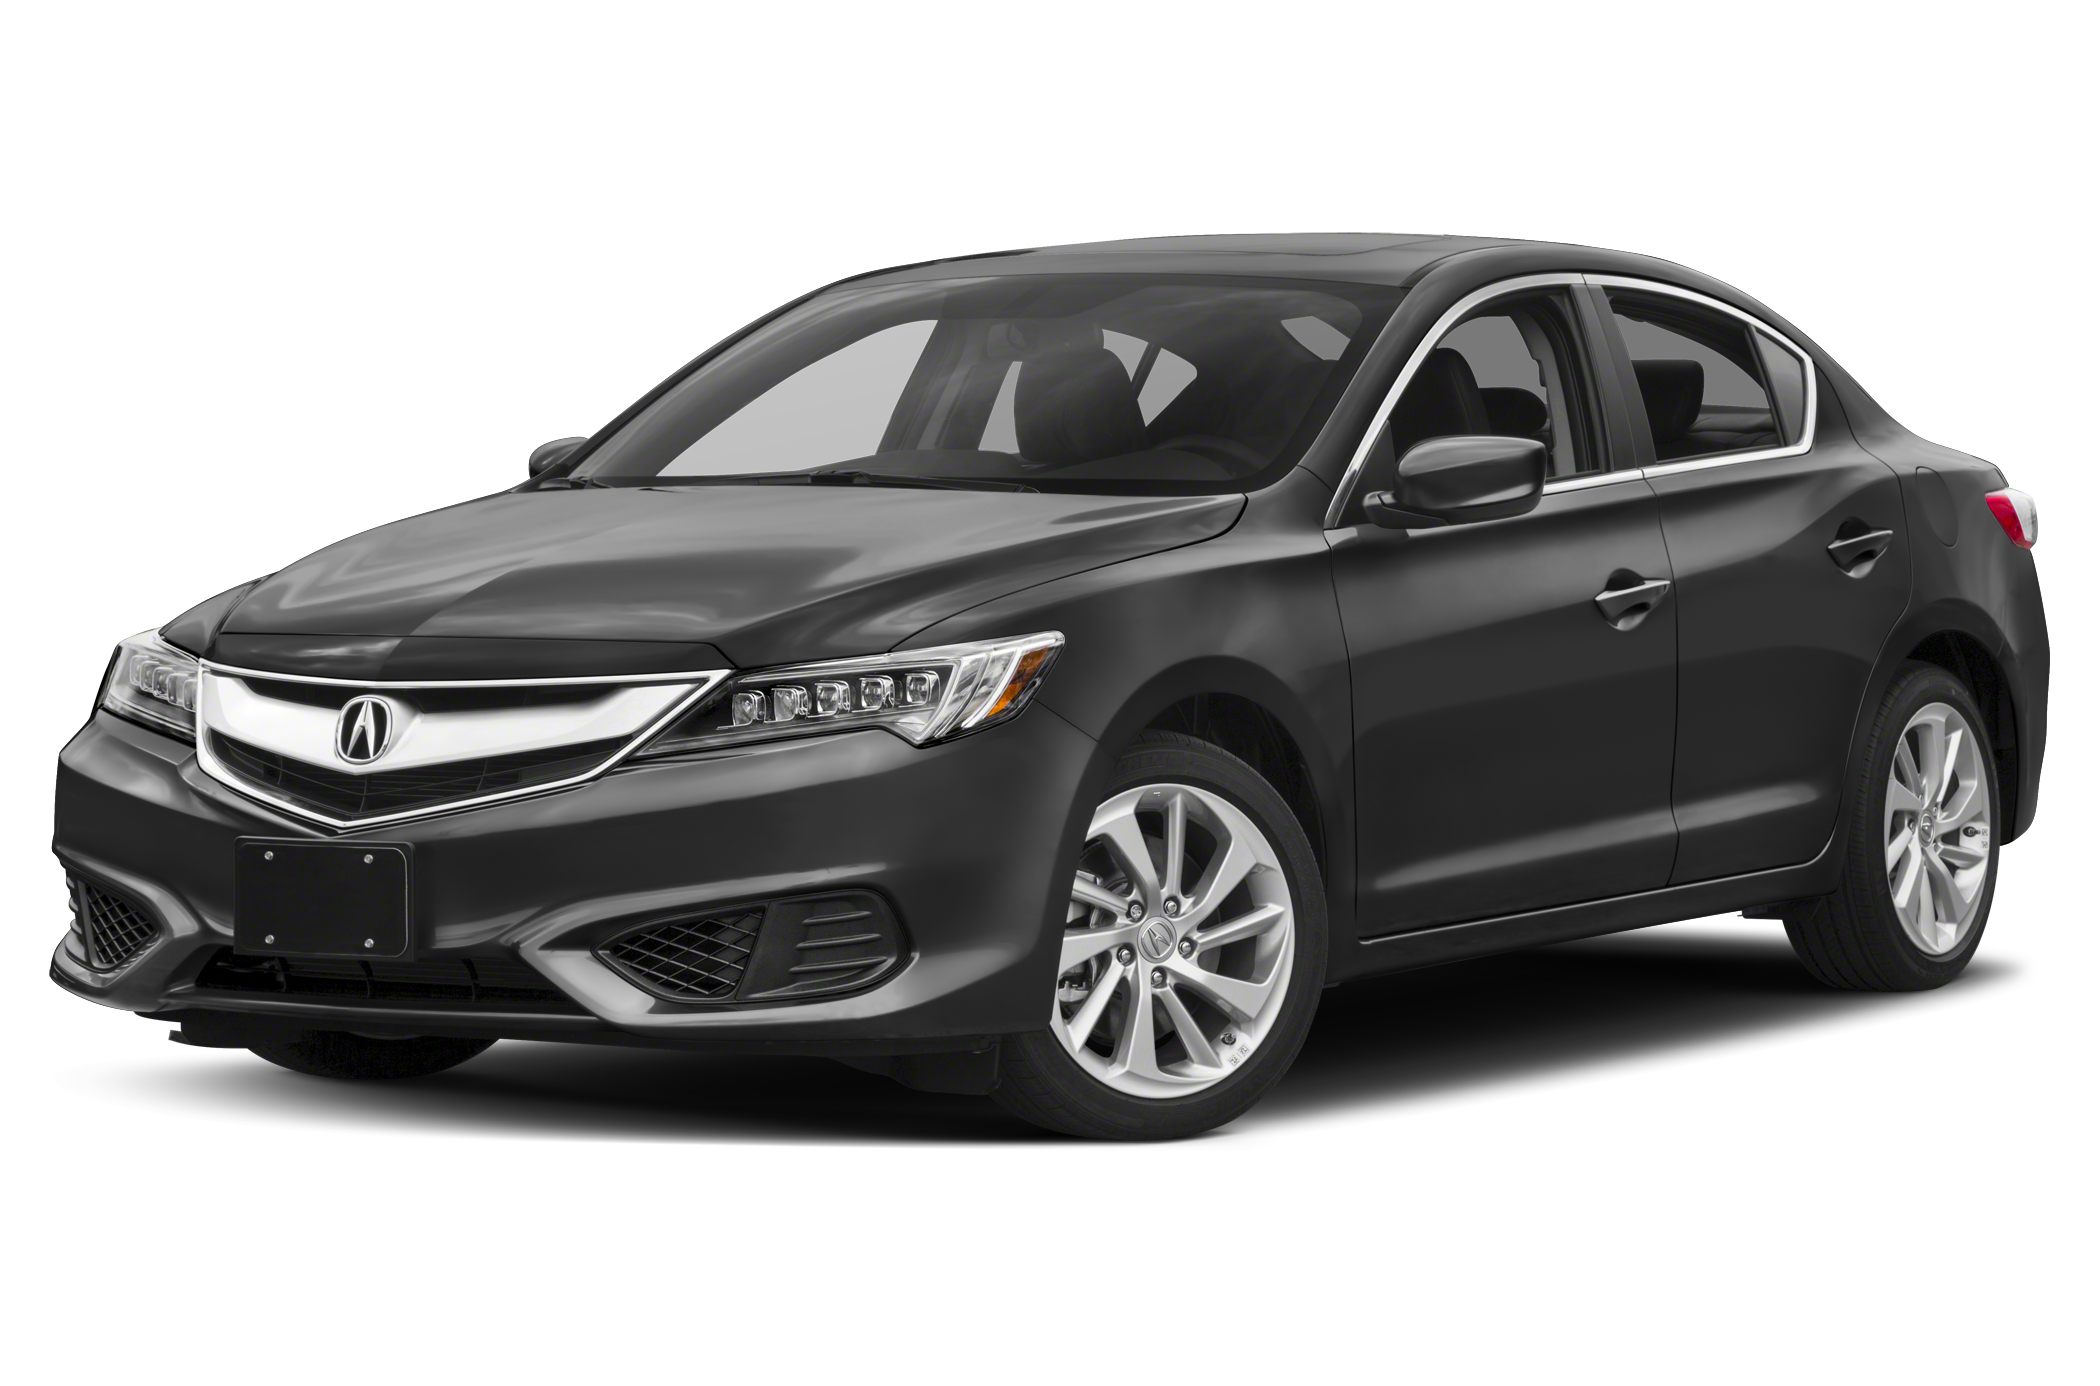 2017 Acura ILX Premium ILX Premium Package Best color Get ready to ENJOY How enticing is it kno